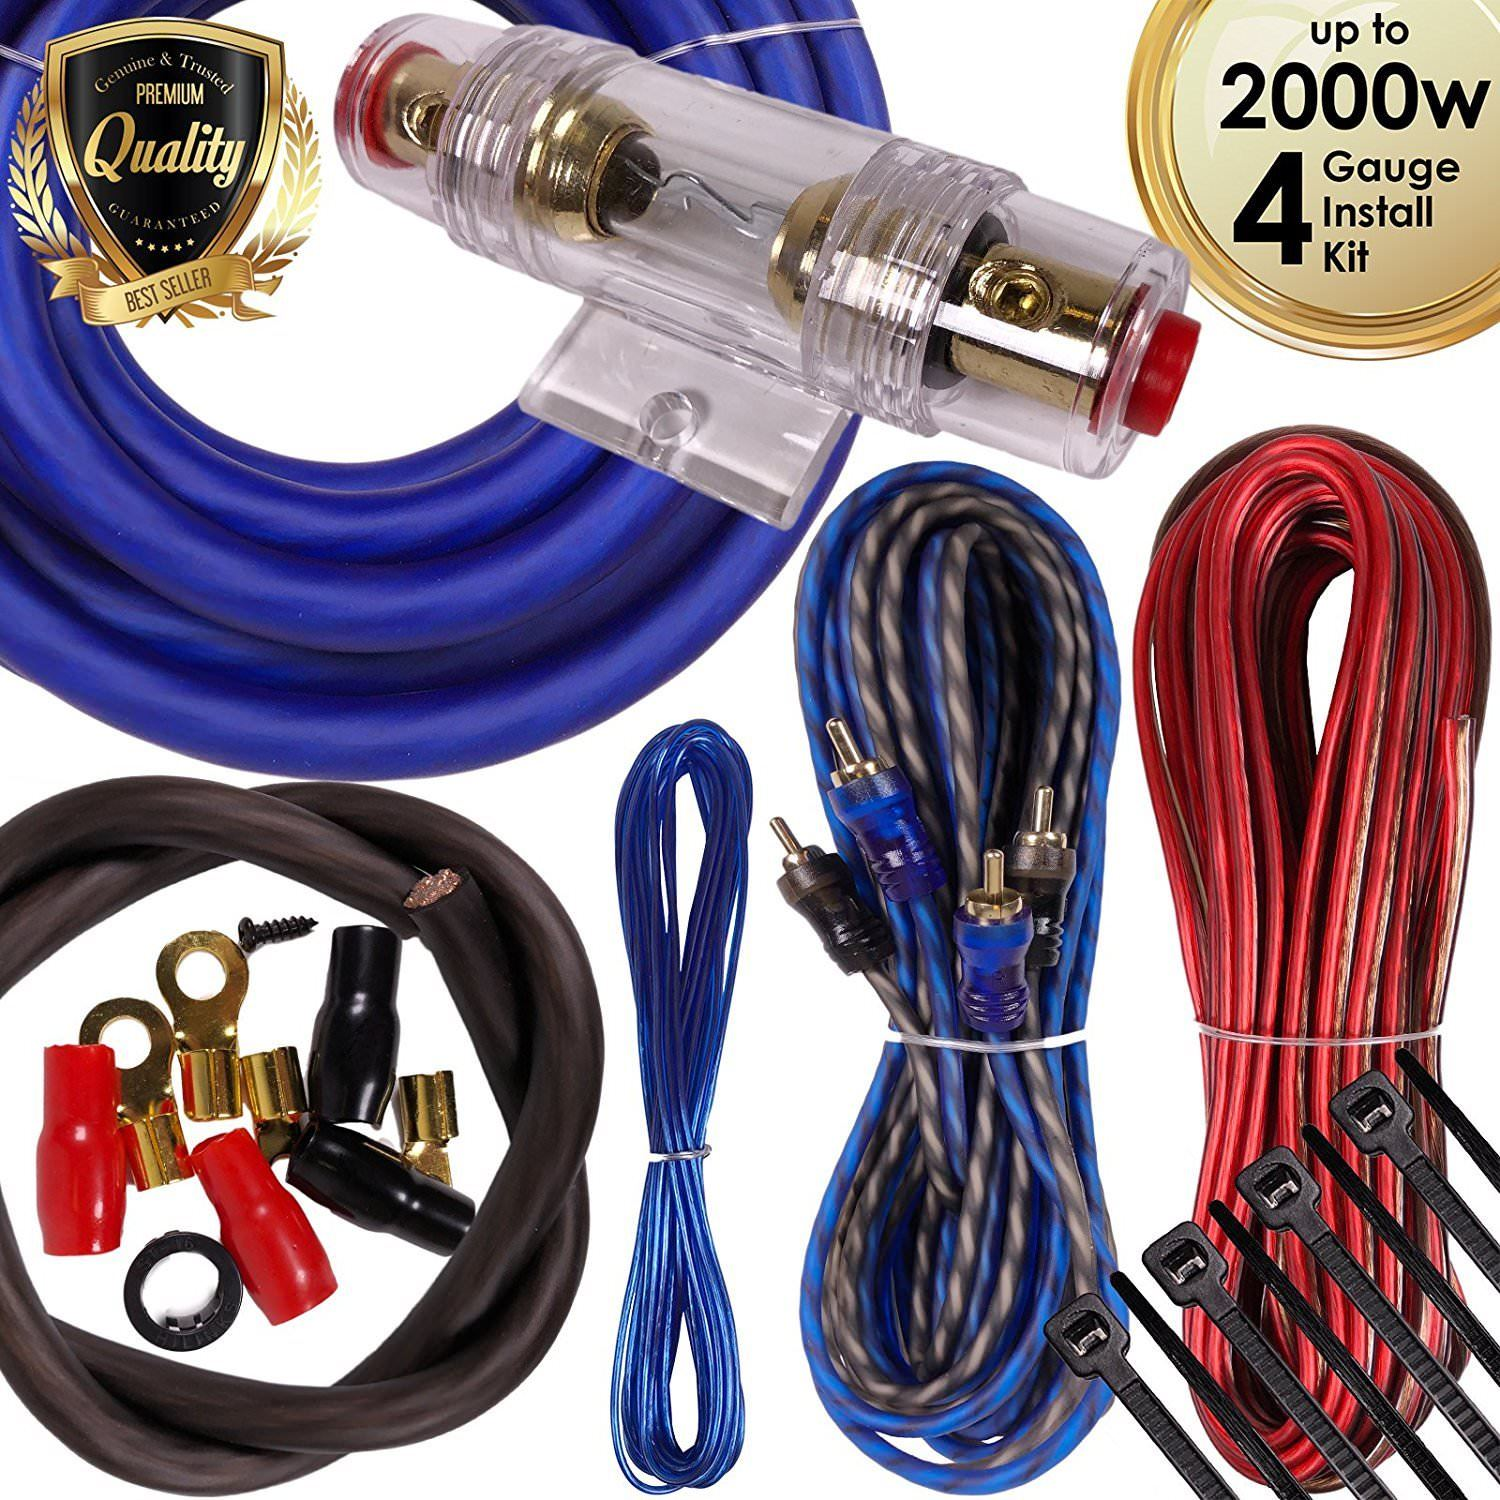 small resolution of wiring kit for car audio india wiring diagram kni4 gauge amplifier wiring kit india we wiring